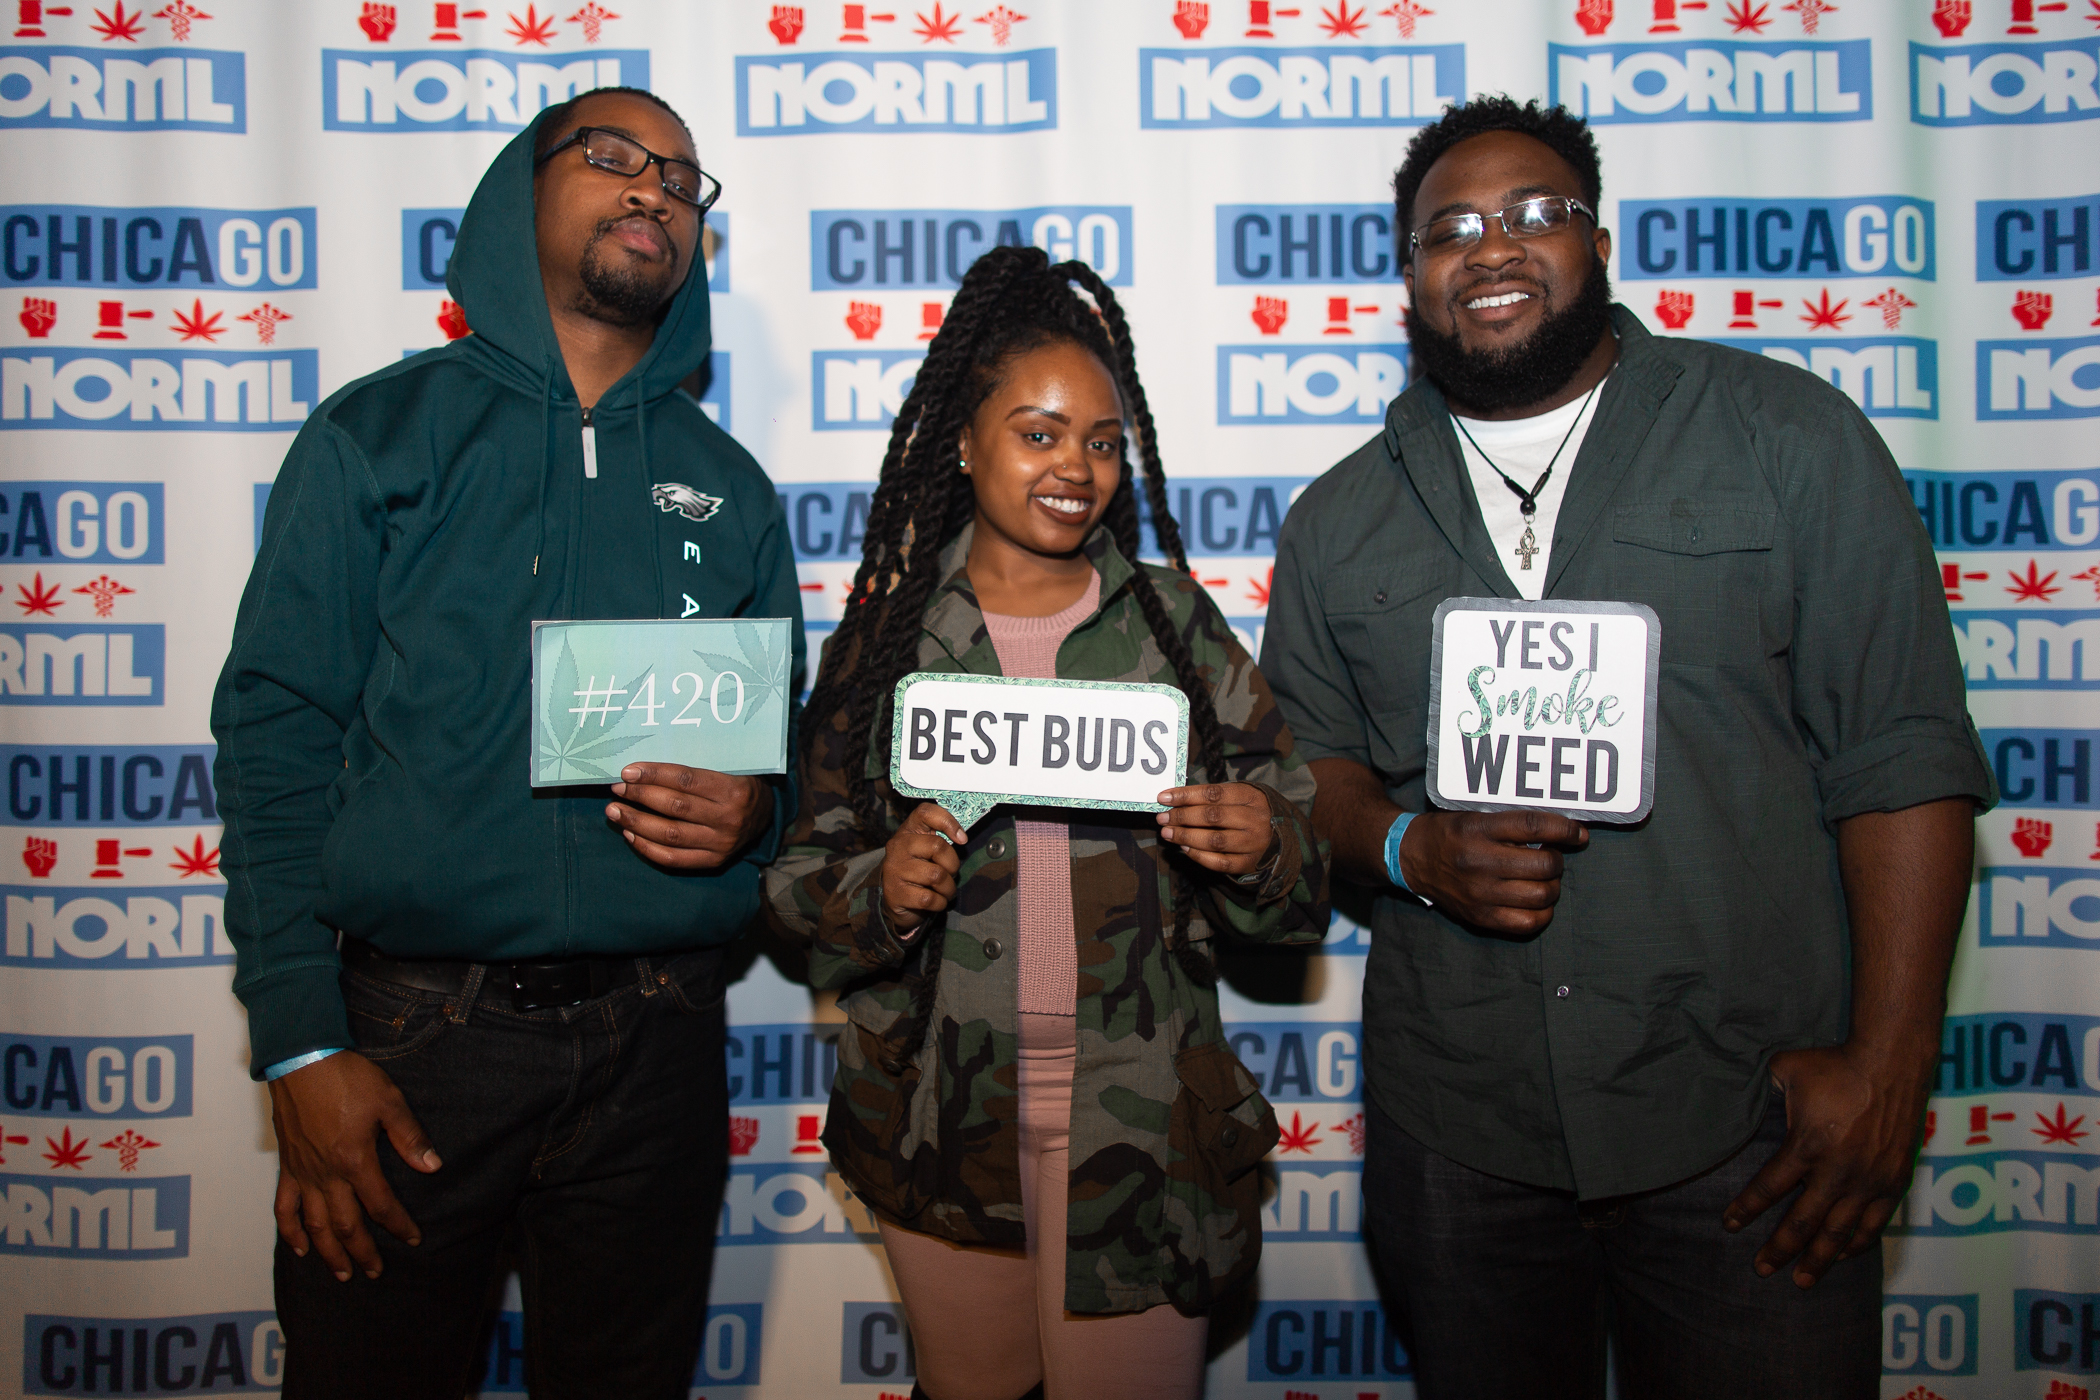 Copy of 20180420 - Chicago Norml-82.jpg